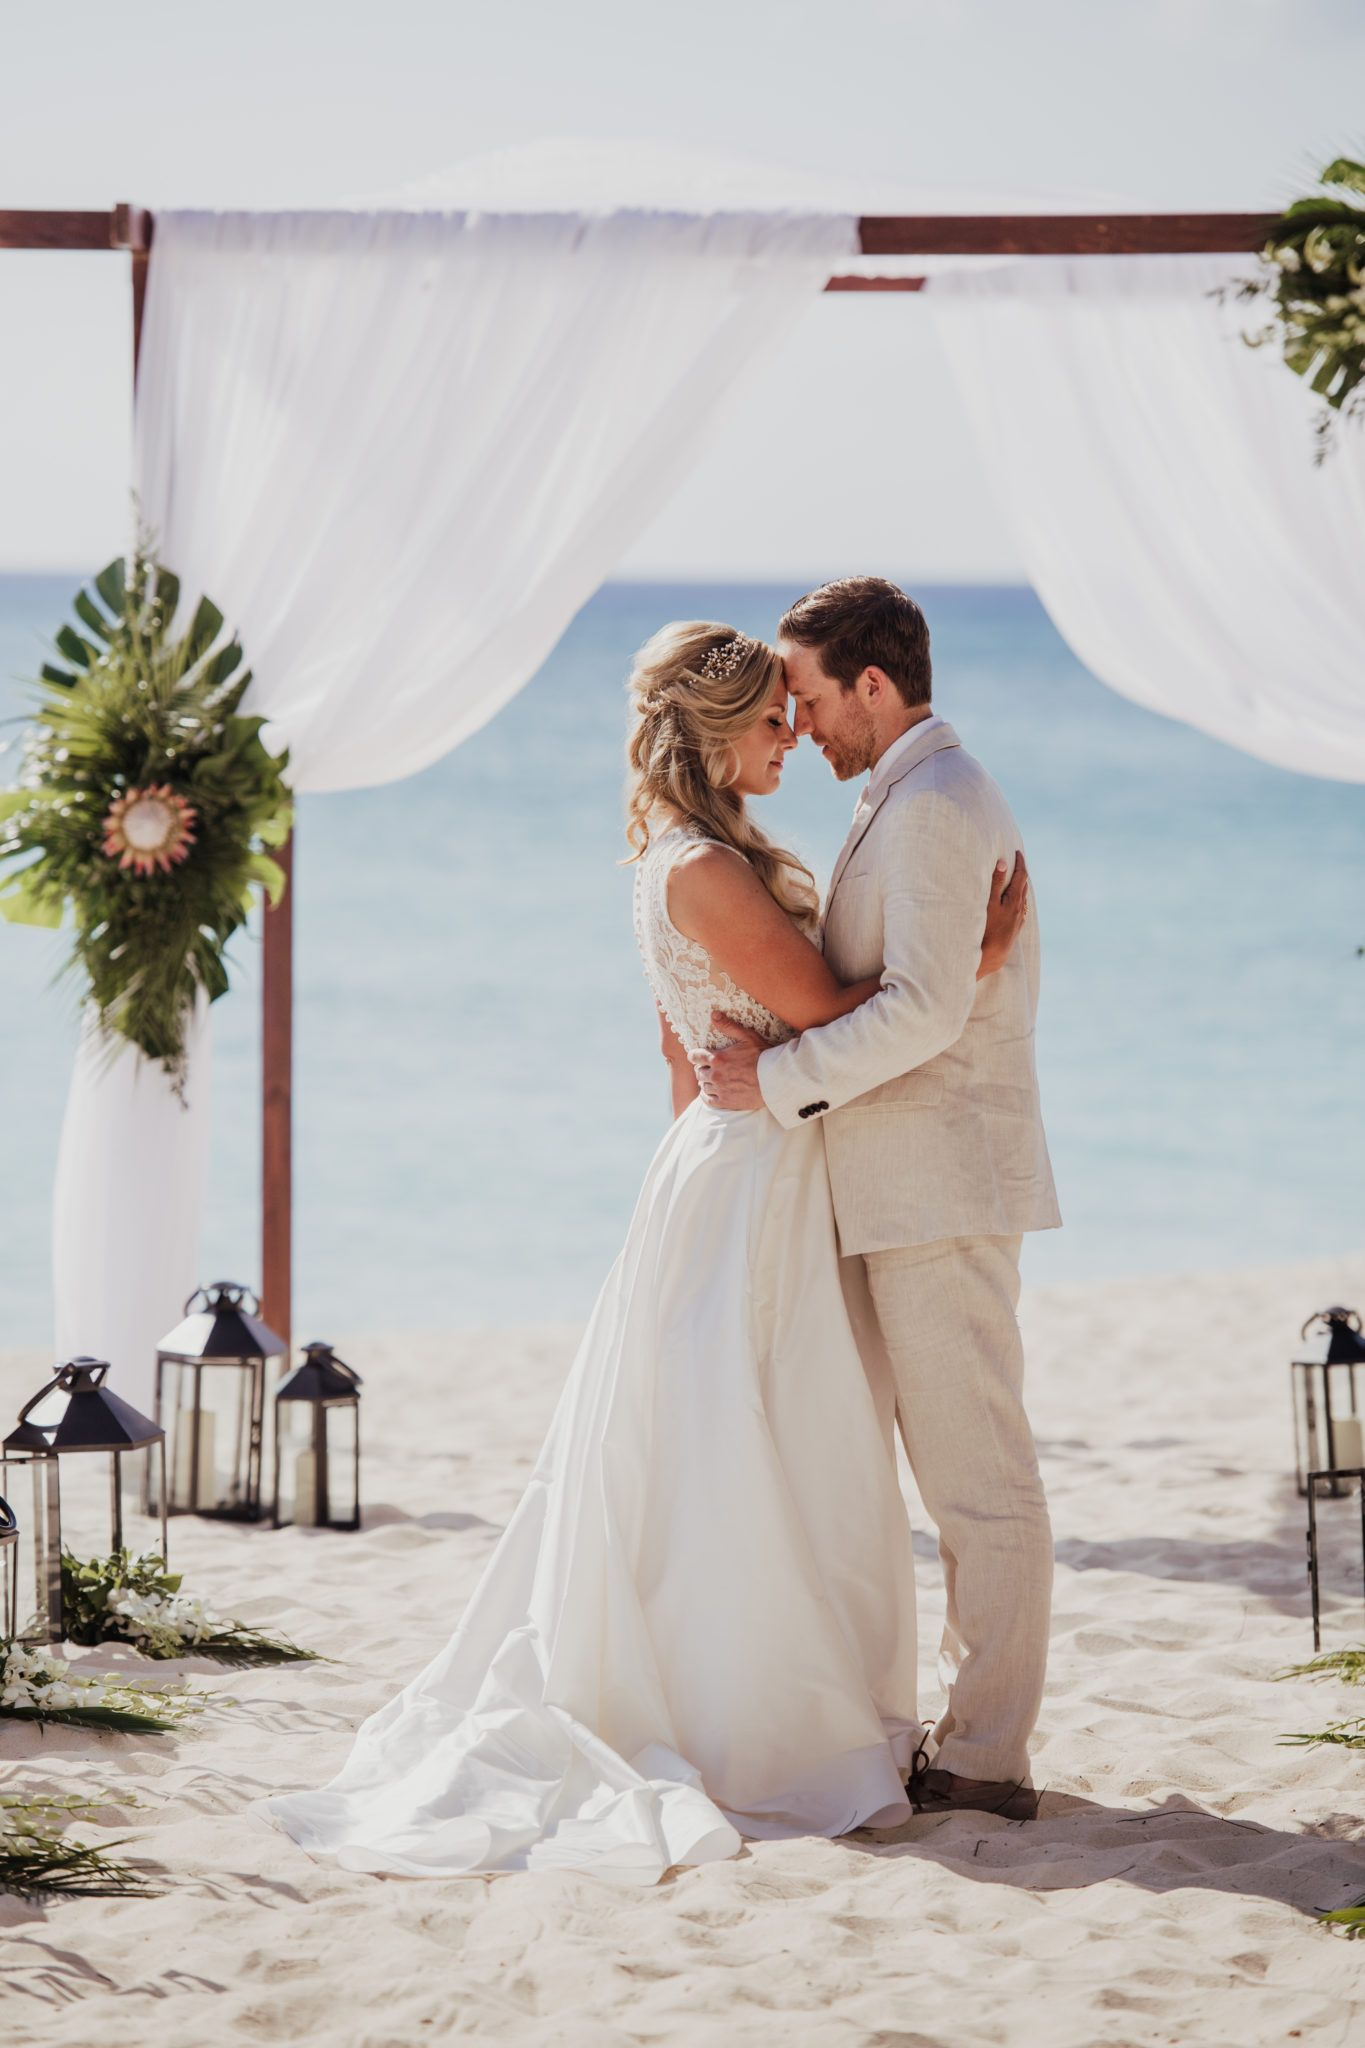 Caribbean wedding dress  Elegant Destination Wedding at the Caribbean Club  Real LeaAnn